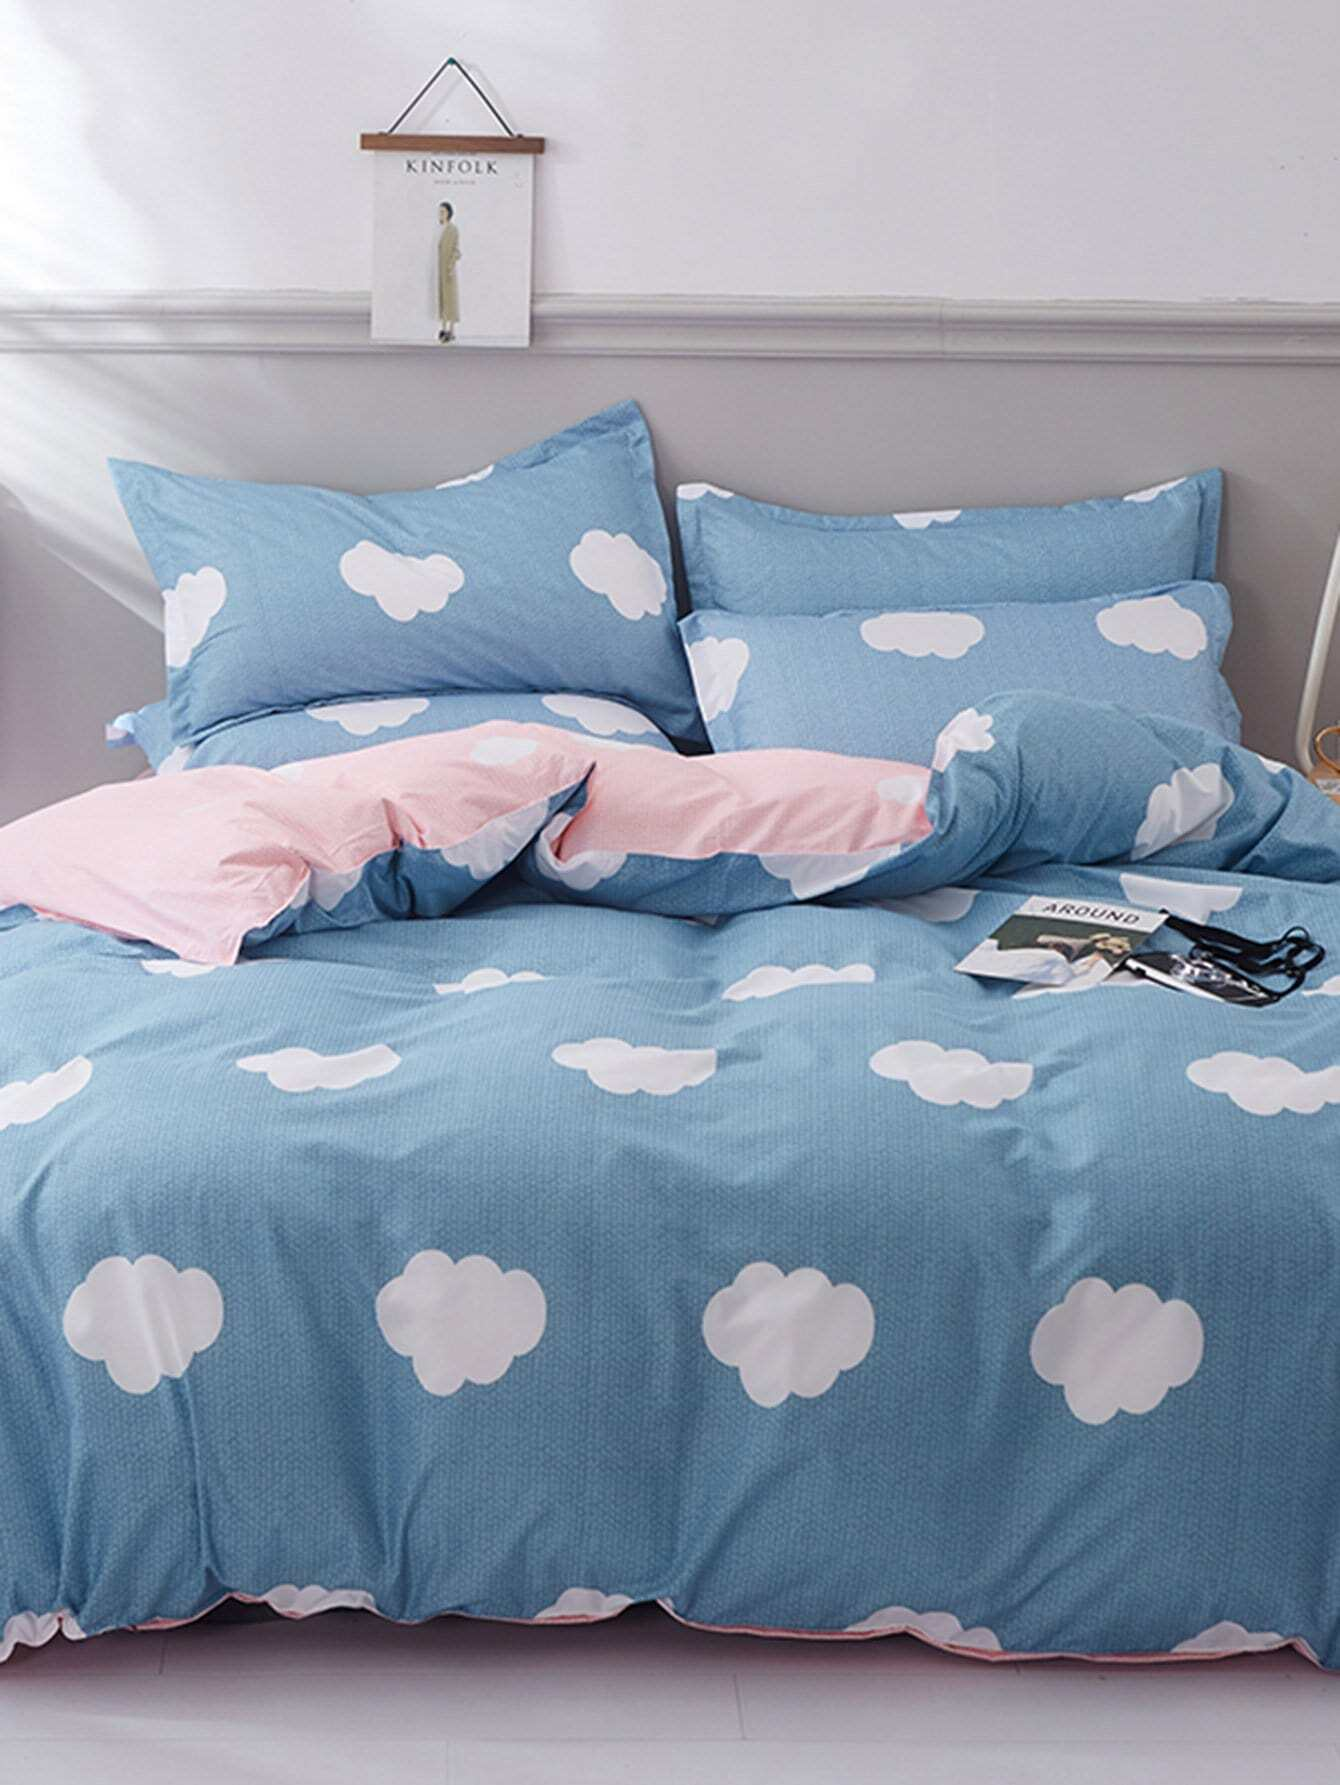 Allover Cloud Print Sheet Set